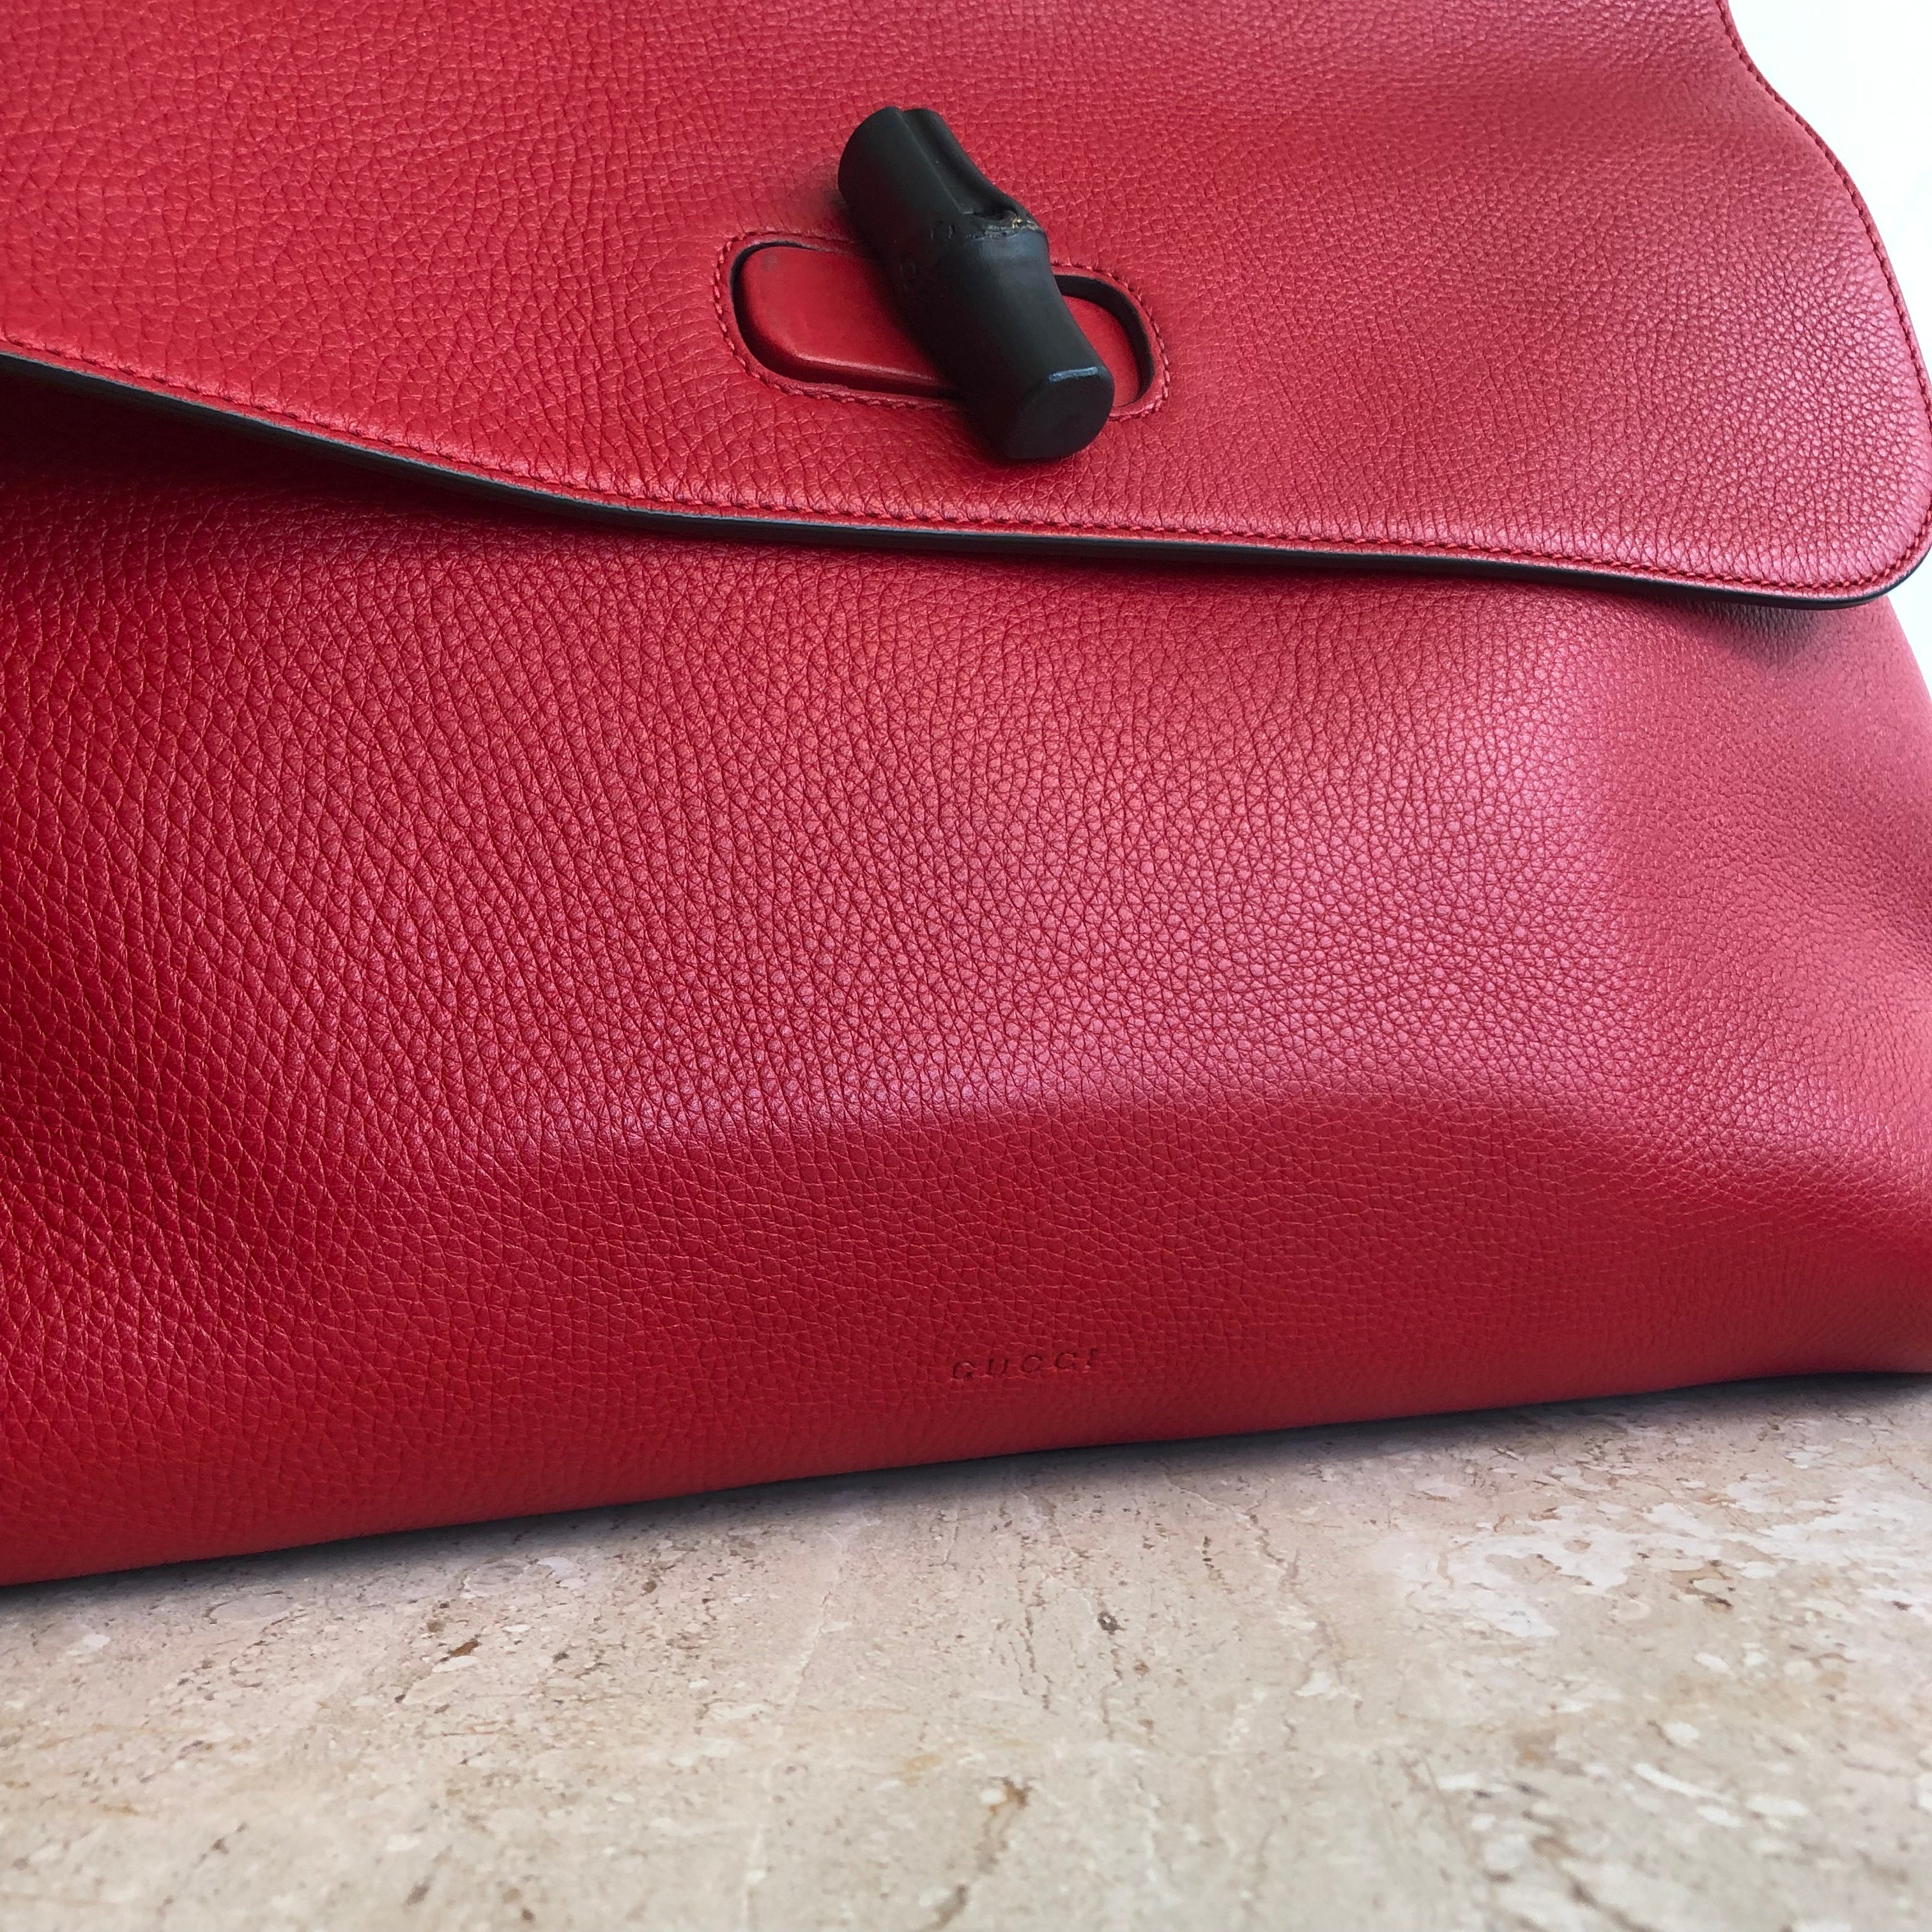 Authentic GUCCI Daily Red Medium Tote